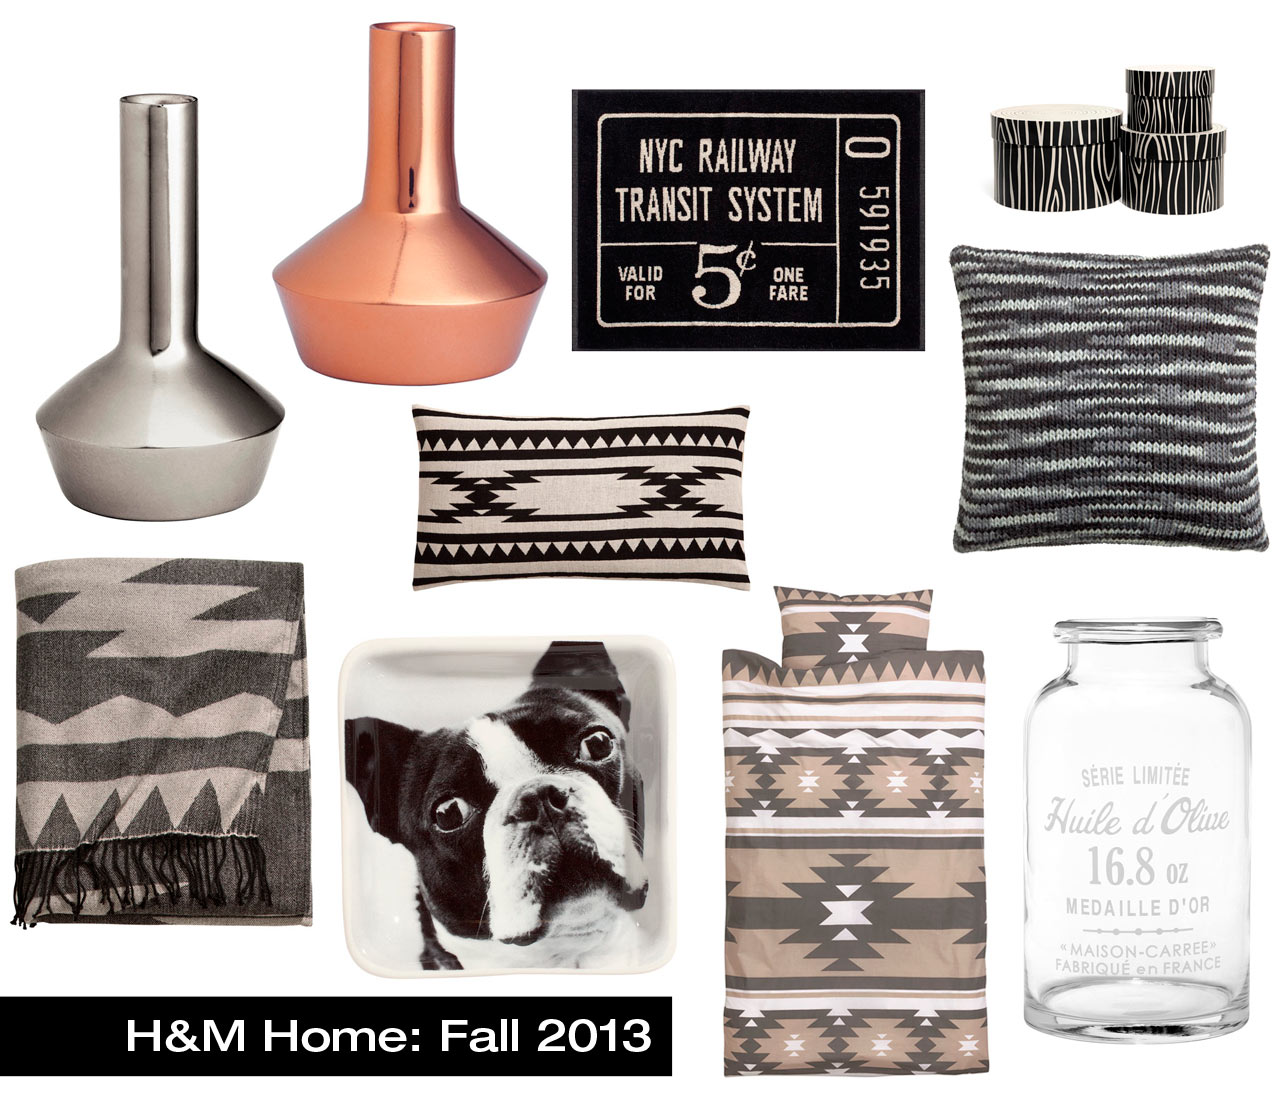 H&M Home Finally Online!